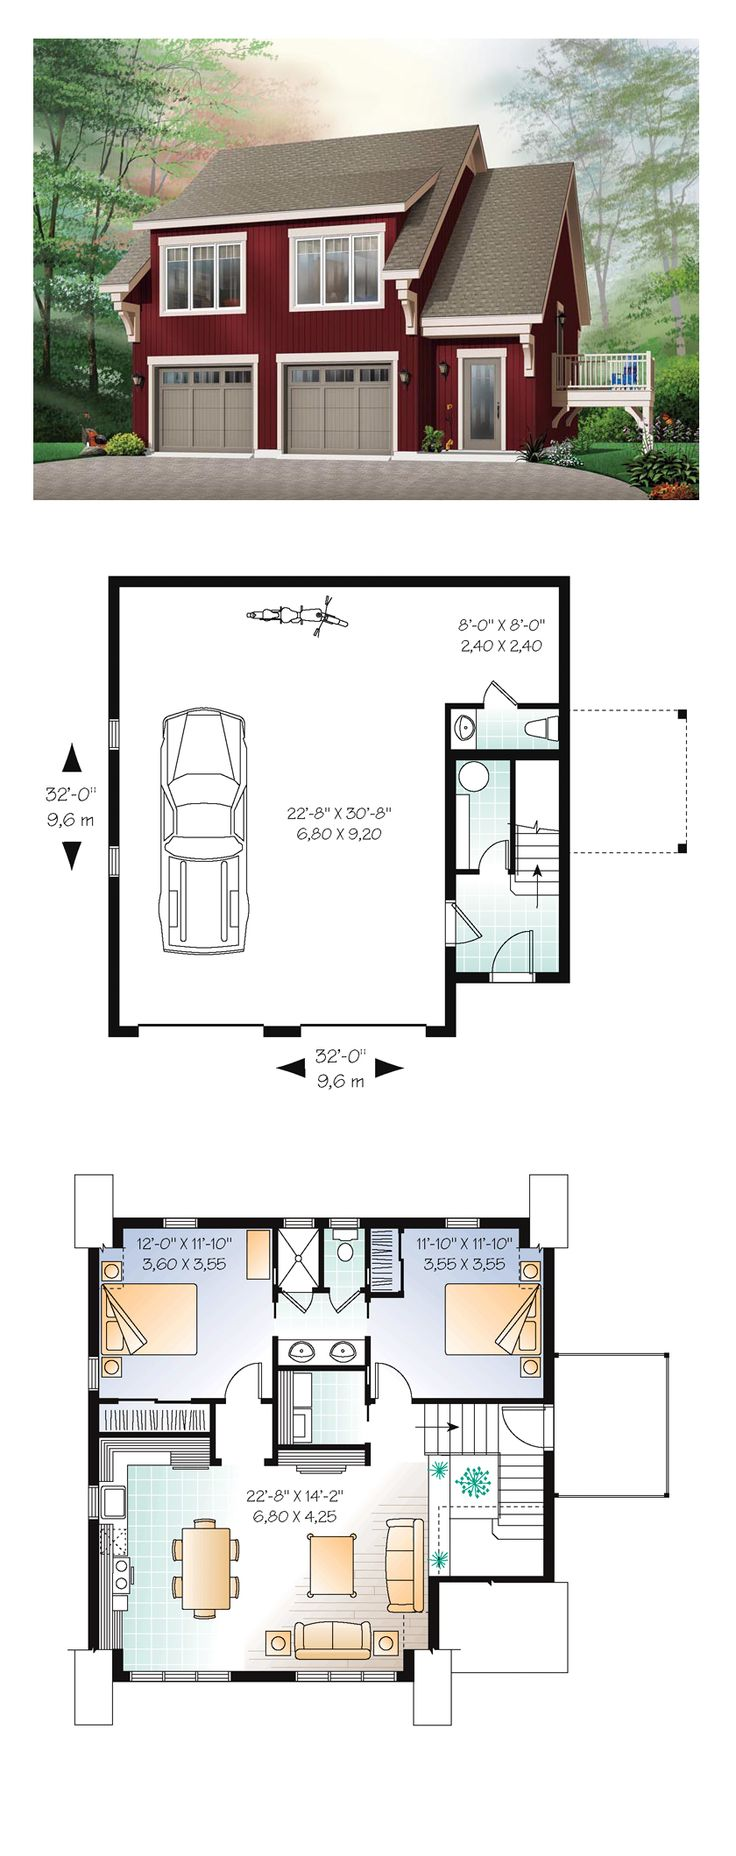 25 best ideas about garage apartment plans on pinterest for Walk up apartment floor plans